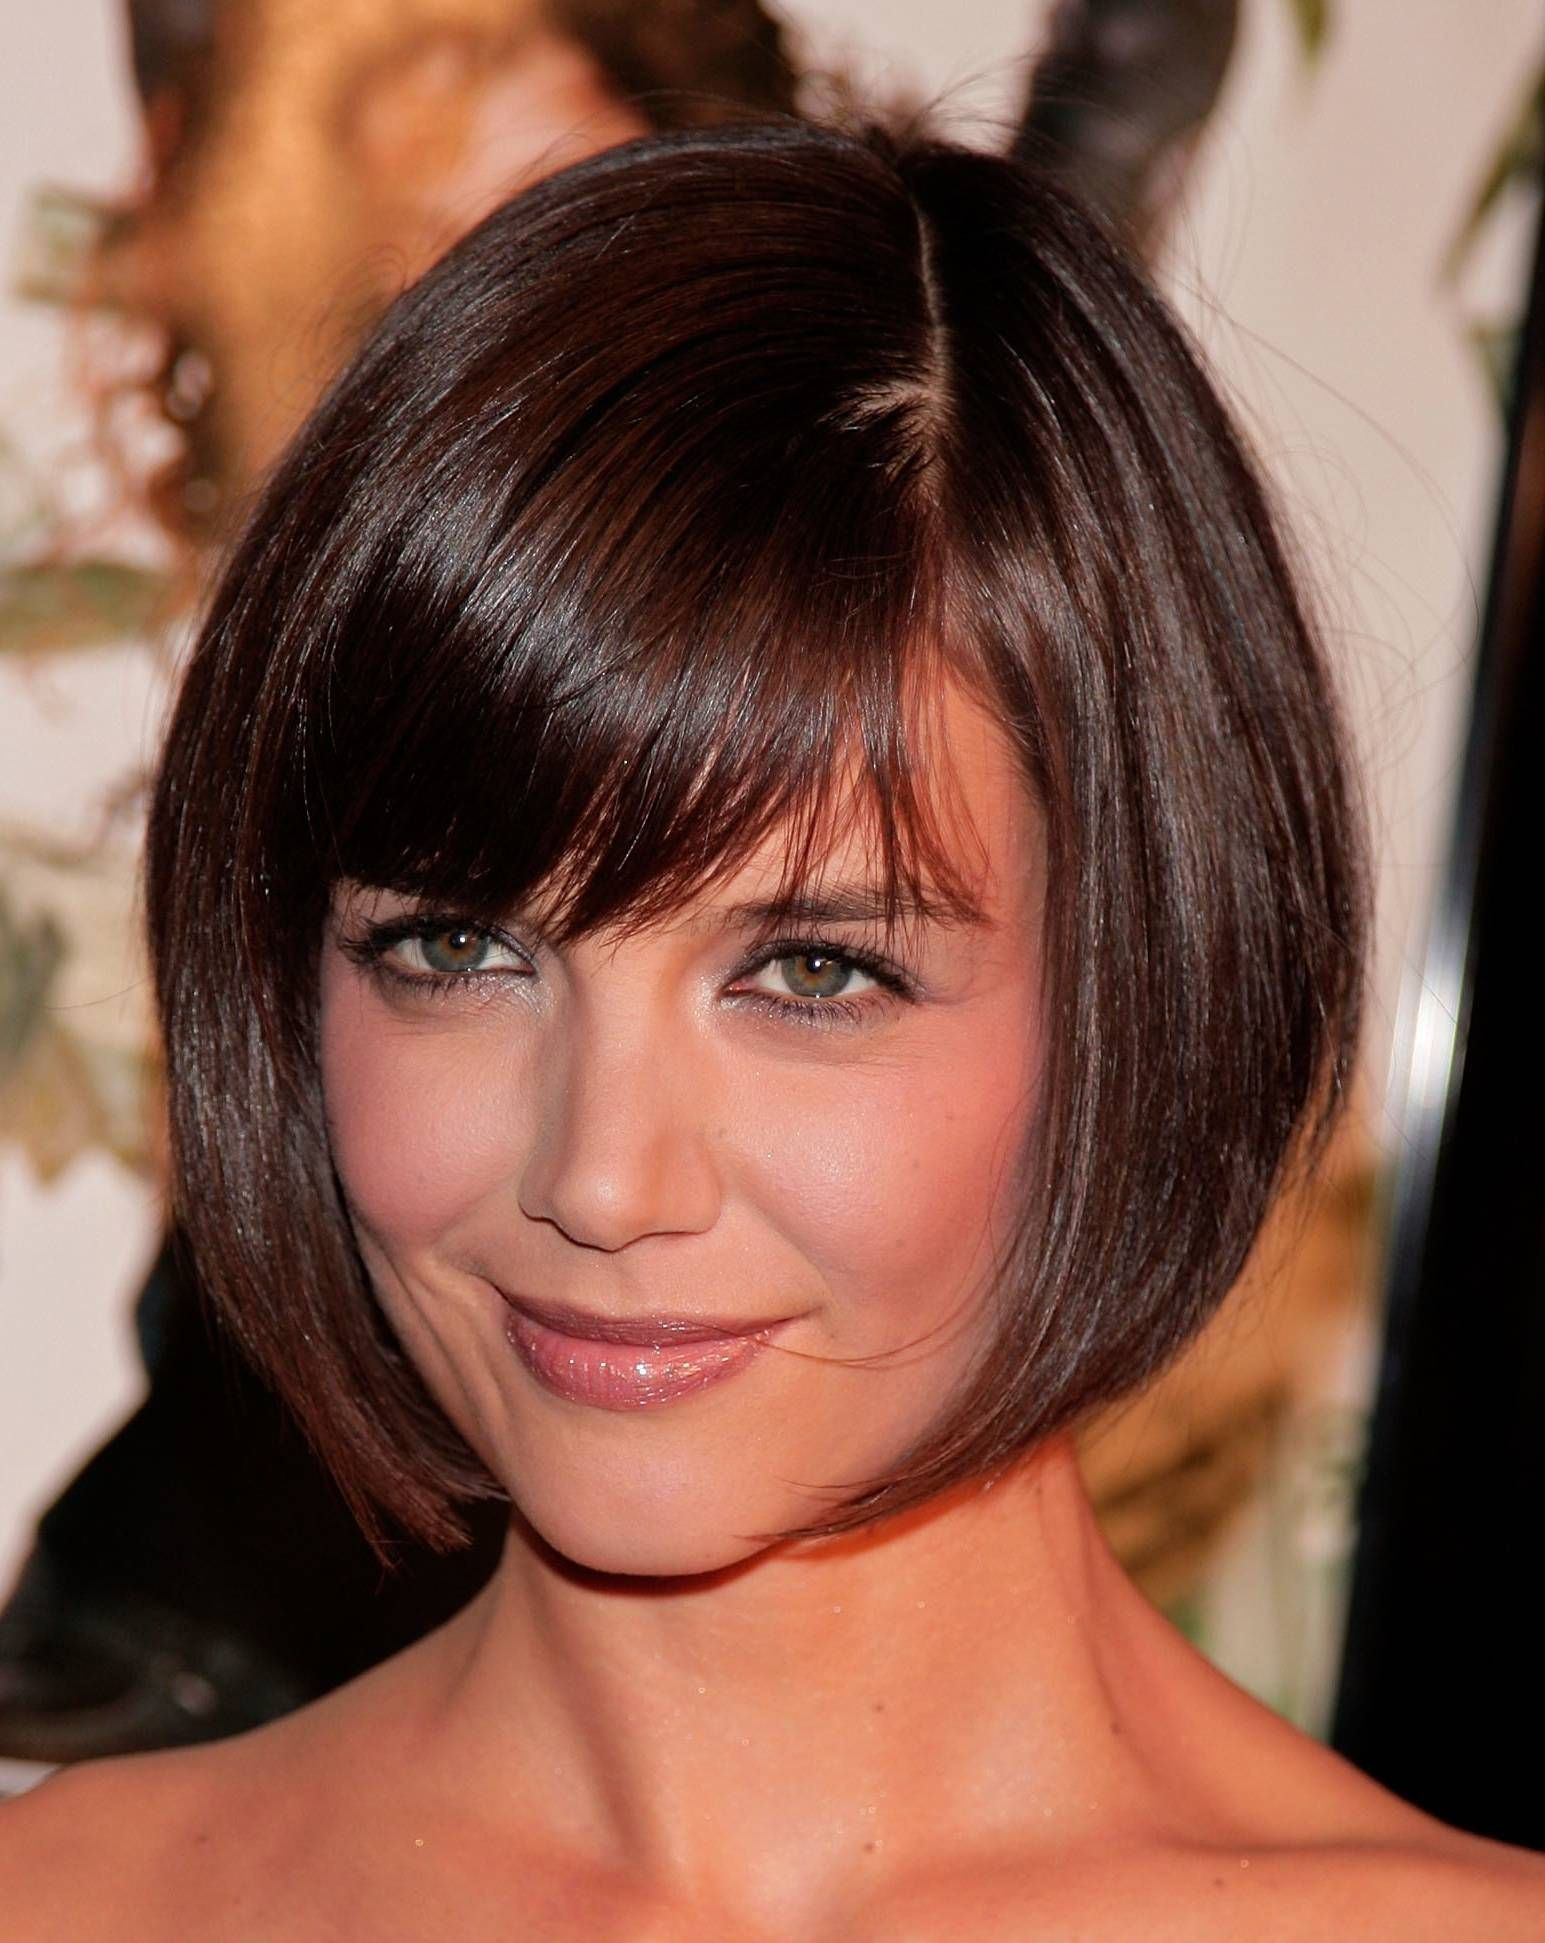 10 Katie Holmes Hairstyles From Long to Short and Back Again